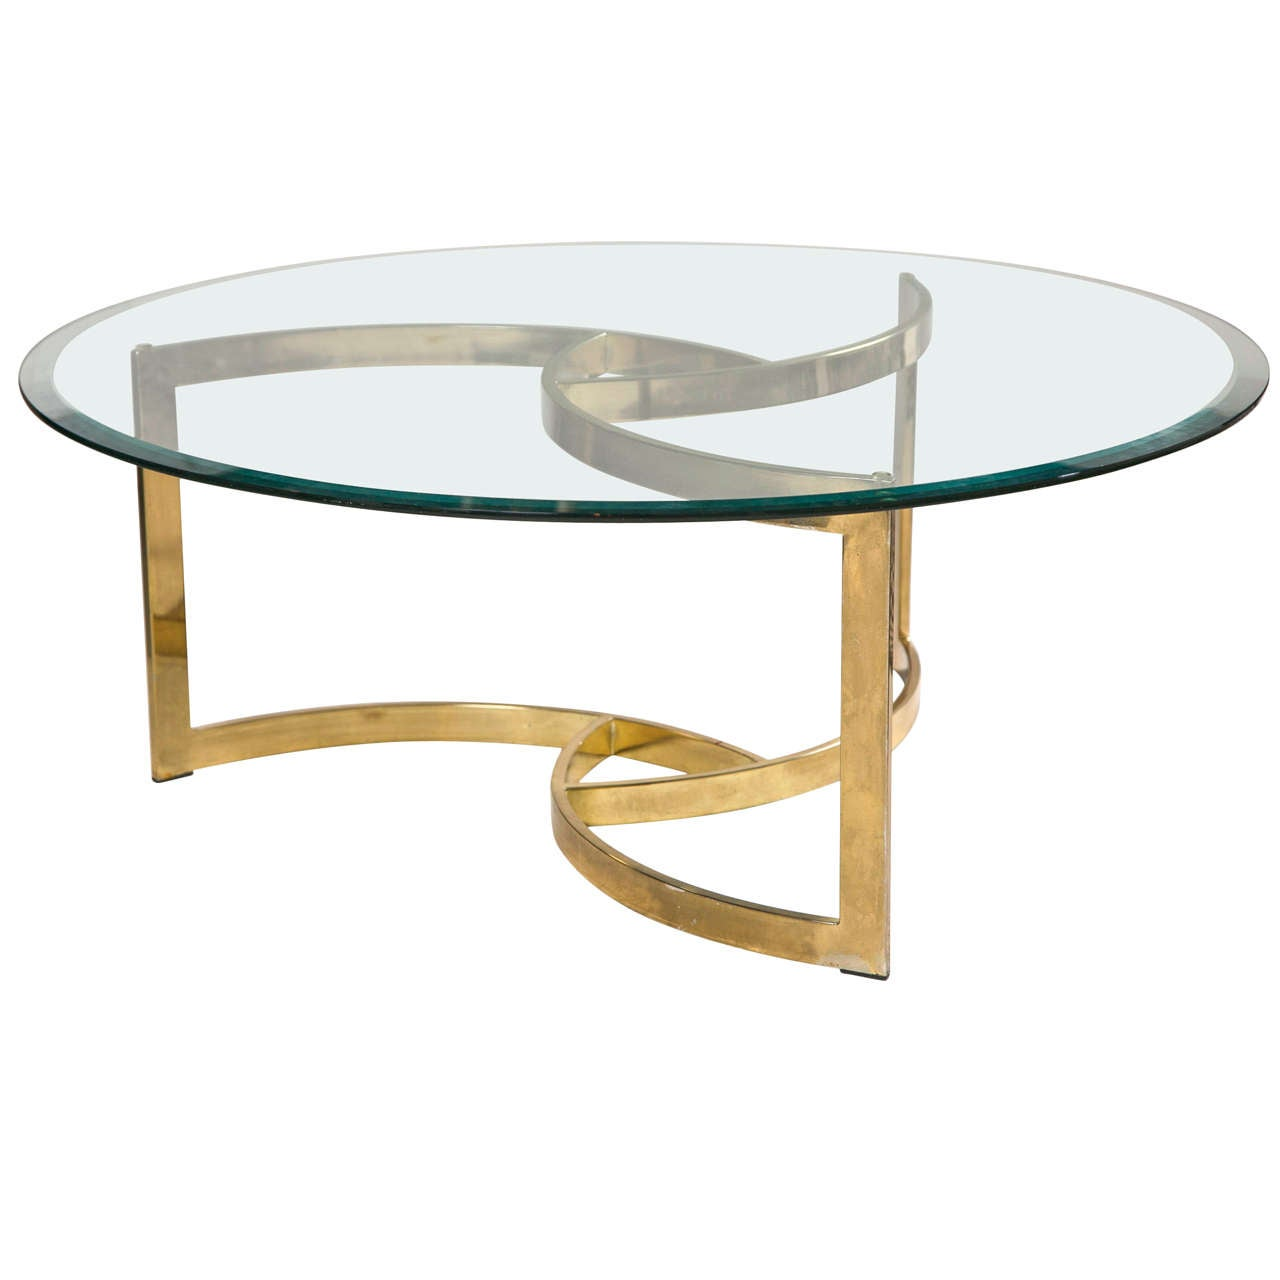 Glass Top Coffee Table With Iron Base: Mid-Century Brass Swirl Base With Round Glass Top Coffee